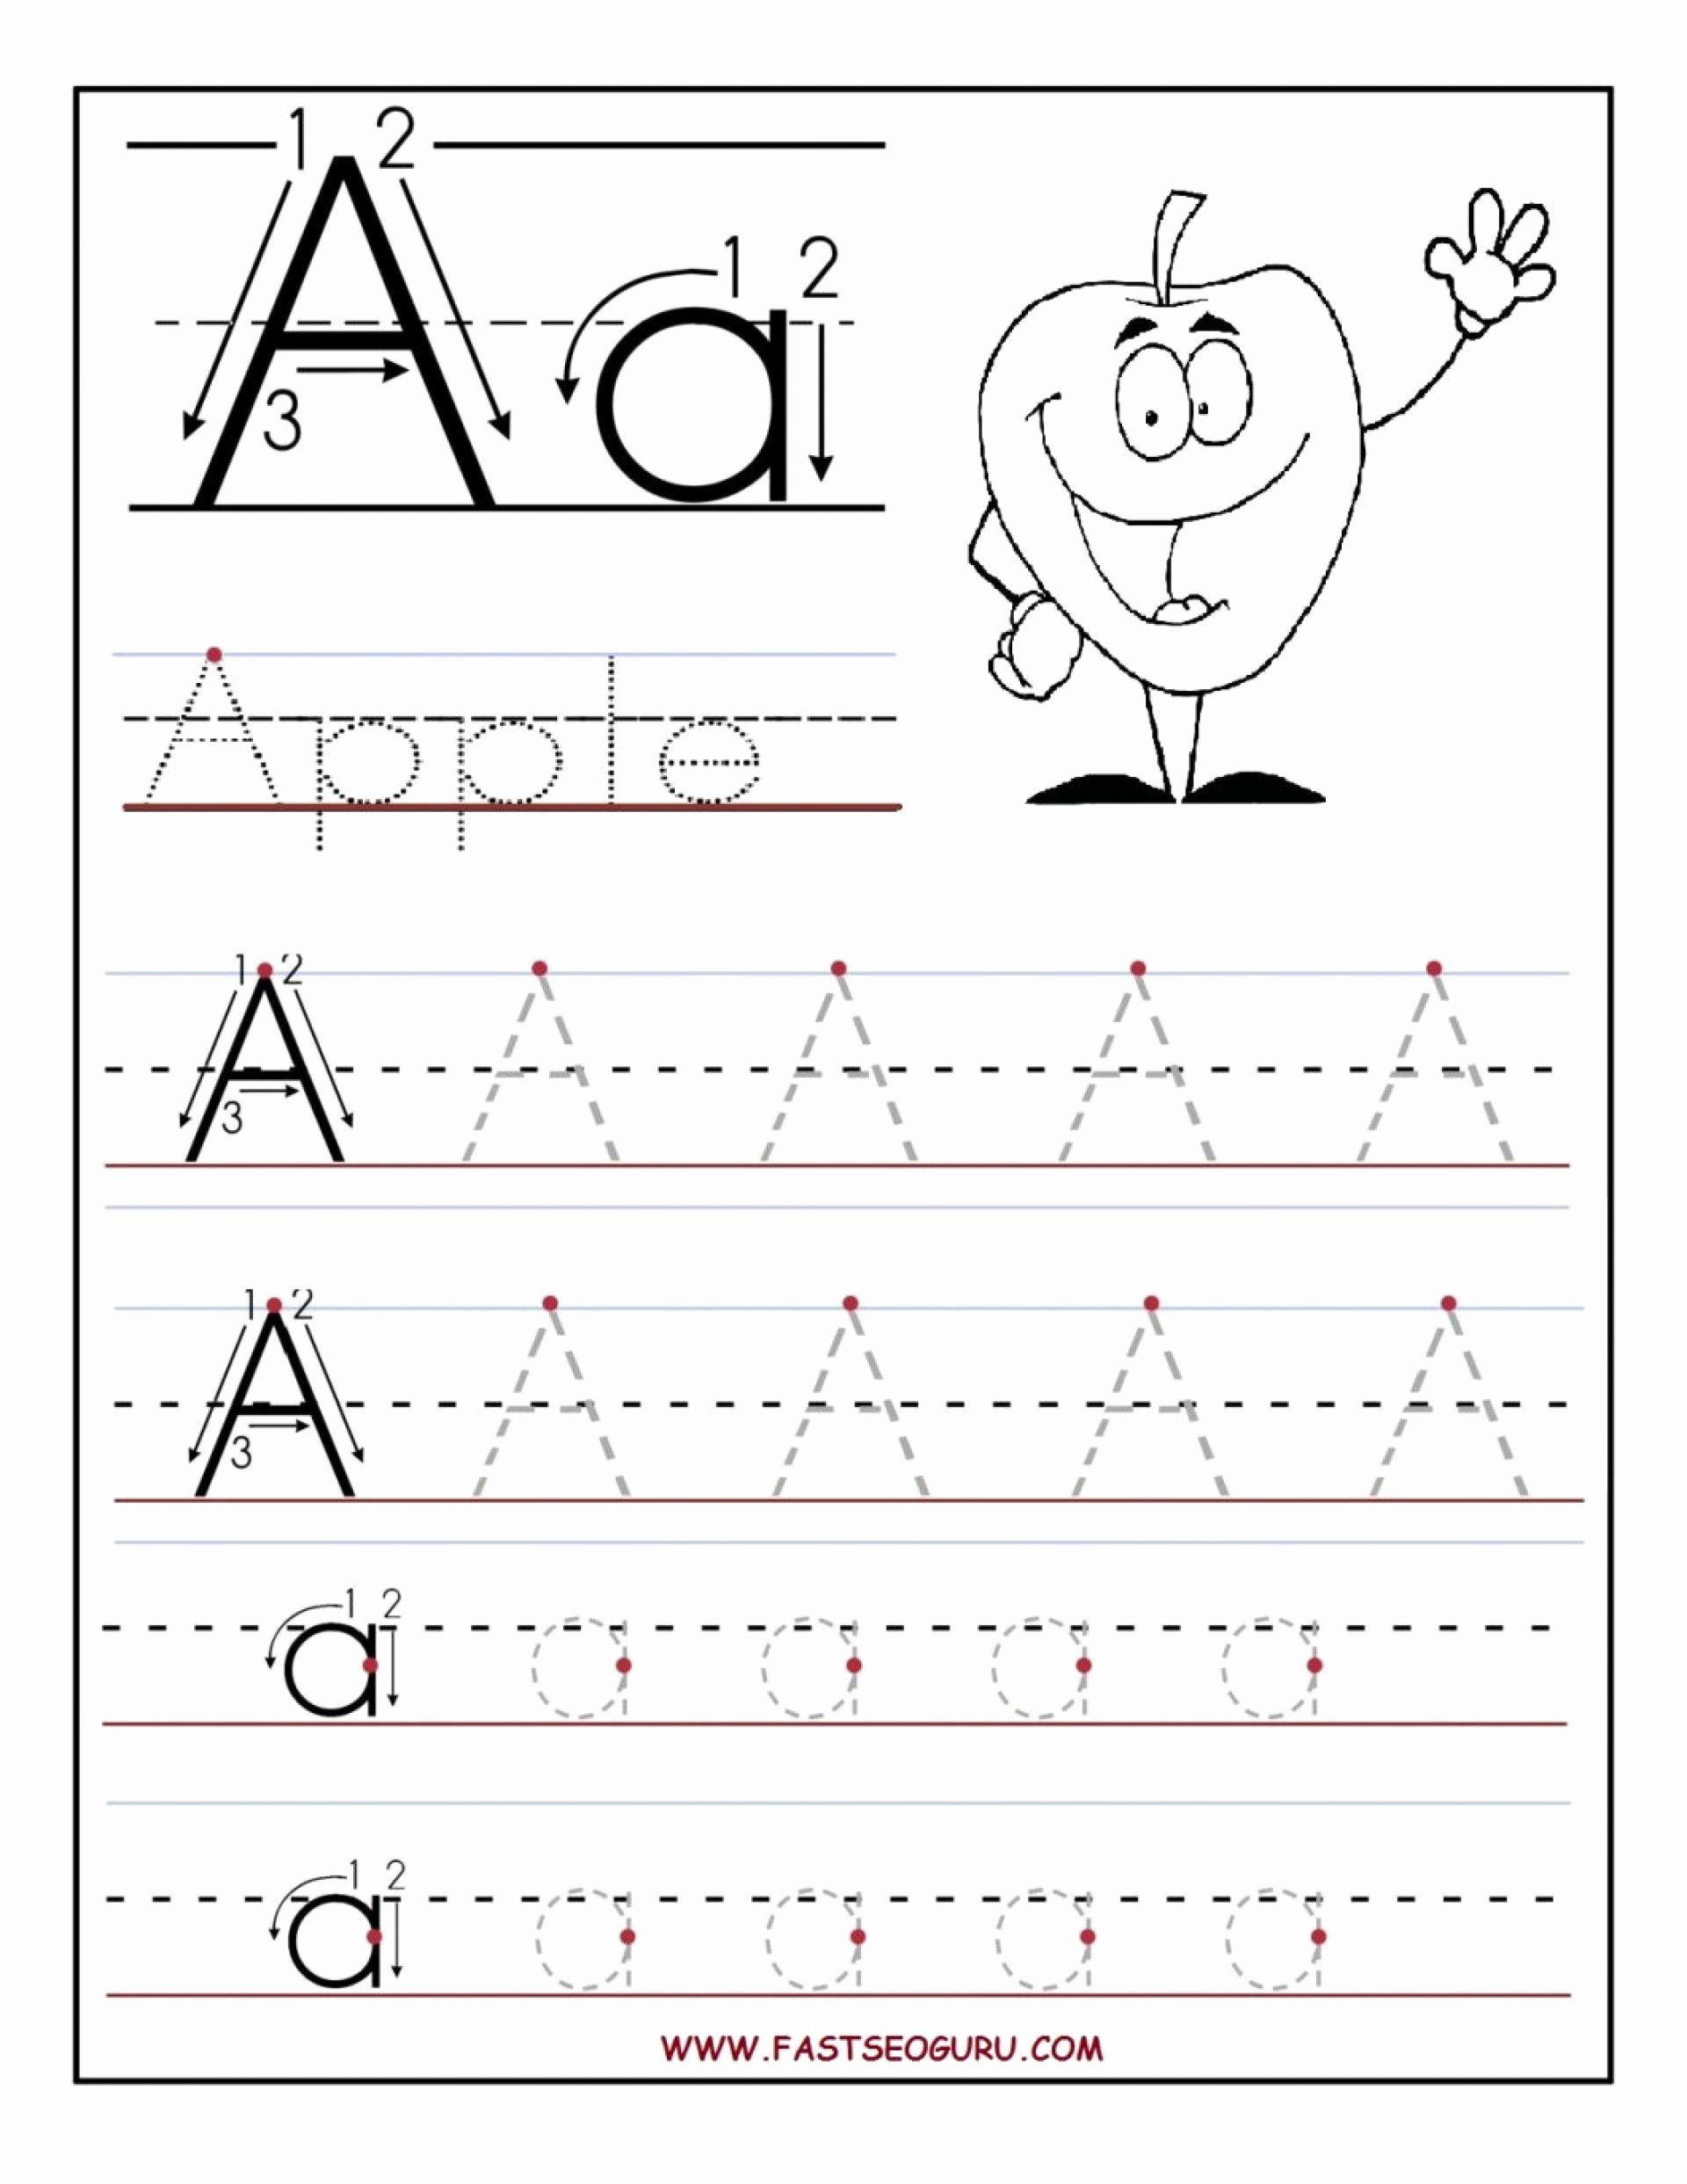 Letter A Worksheets for Preschoolers Free top Coloring Book Preschool Free Printable Worksheets Tracing